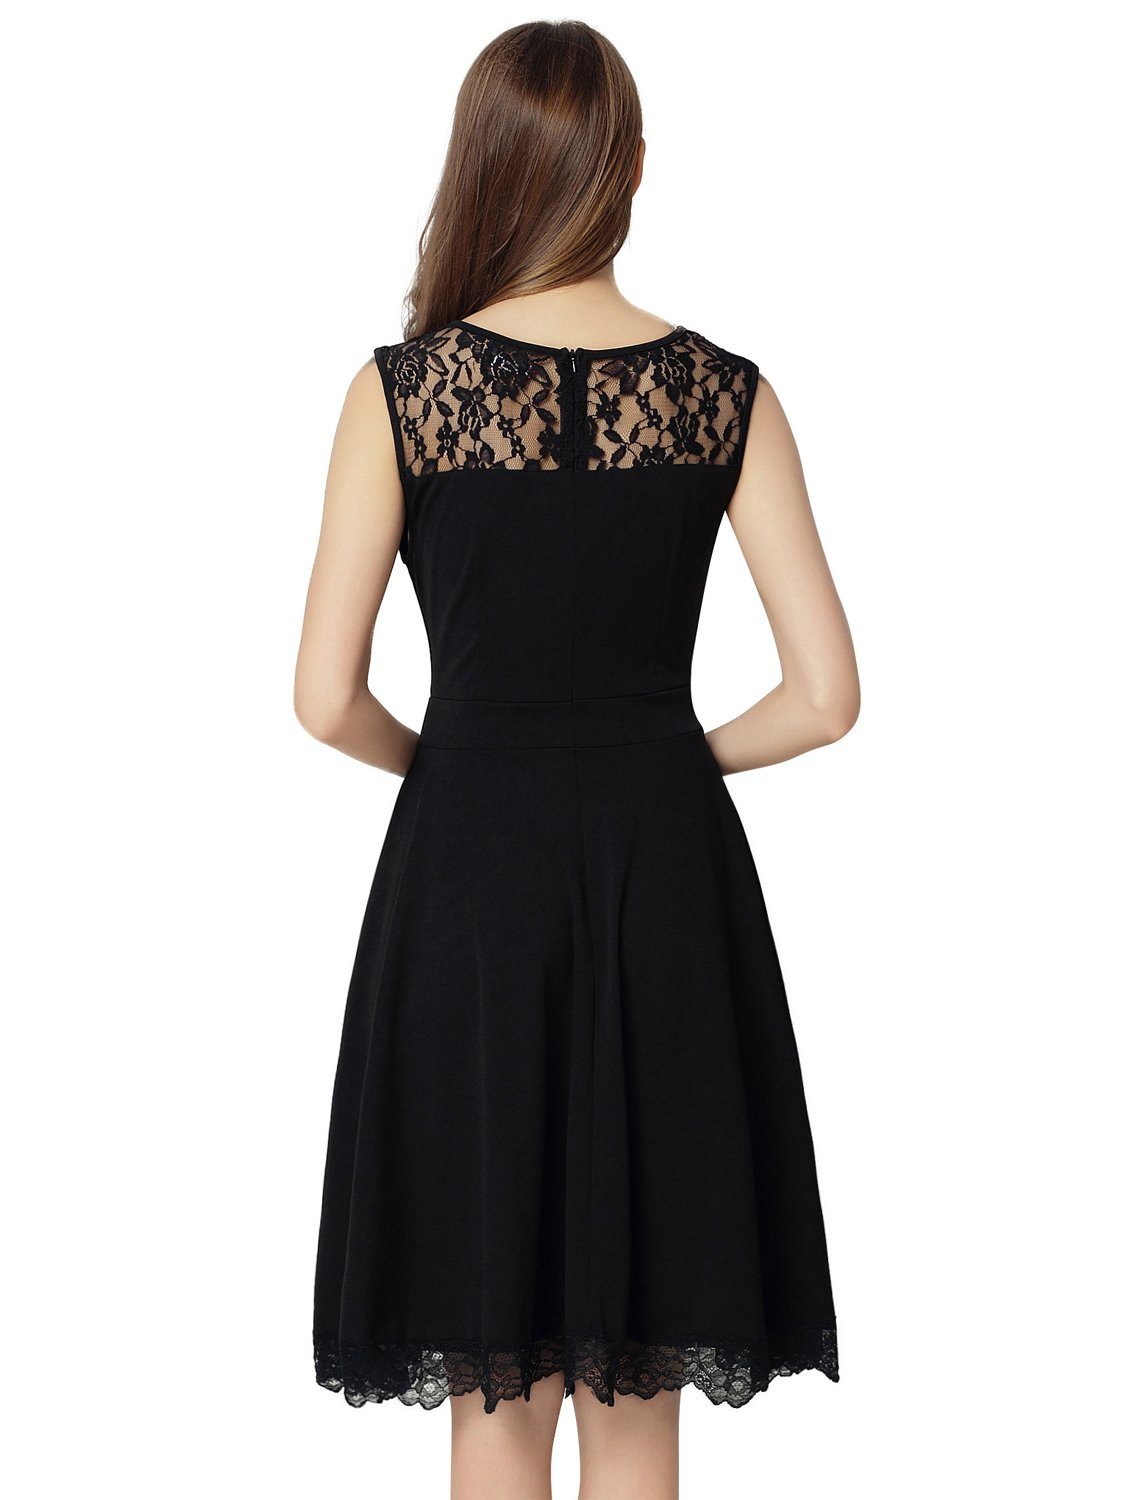 Dresms Women Sleeveless Lace Floral Elegant Cocktail Dress Crew Neck Knee Length (Black, Small) by Dresms (Image #5)